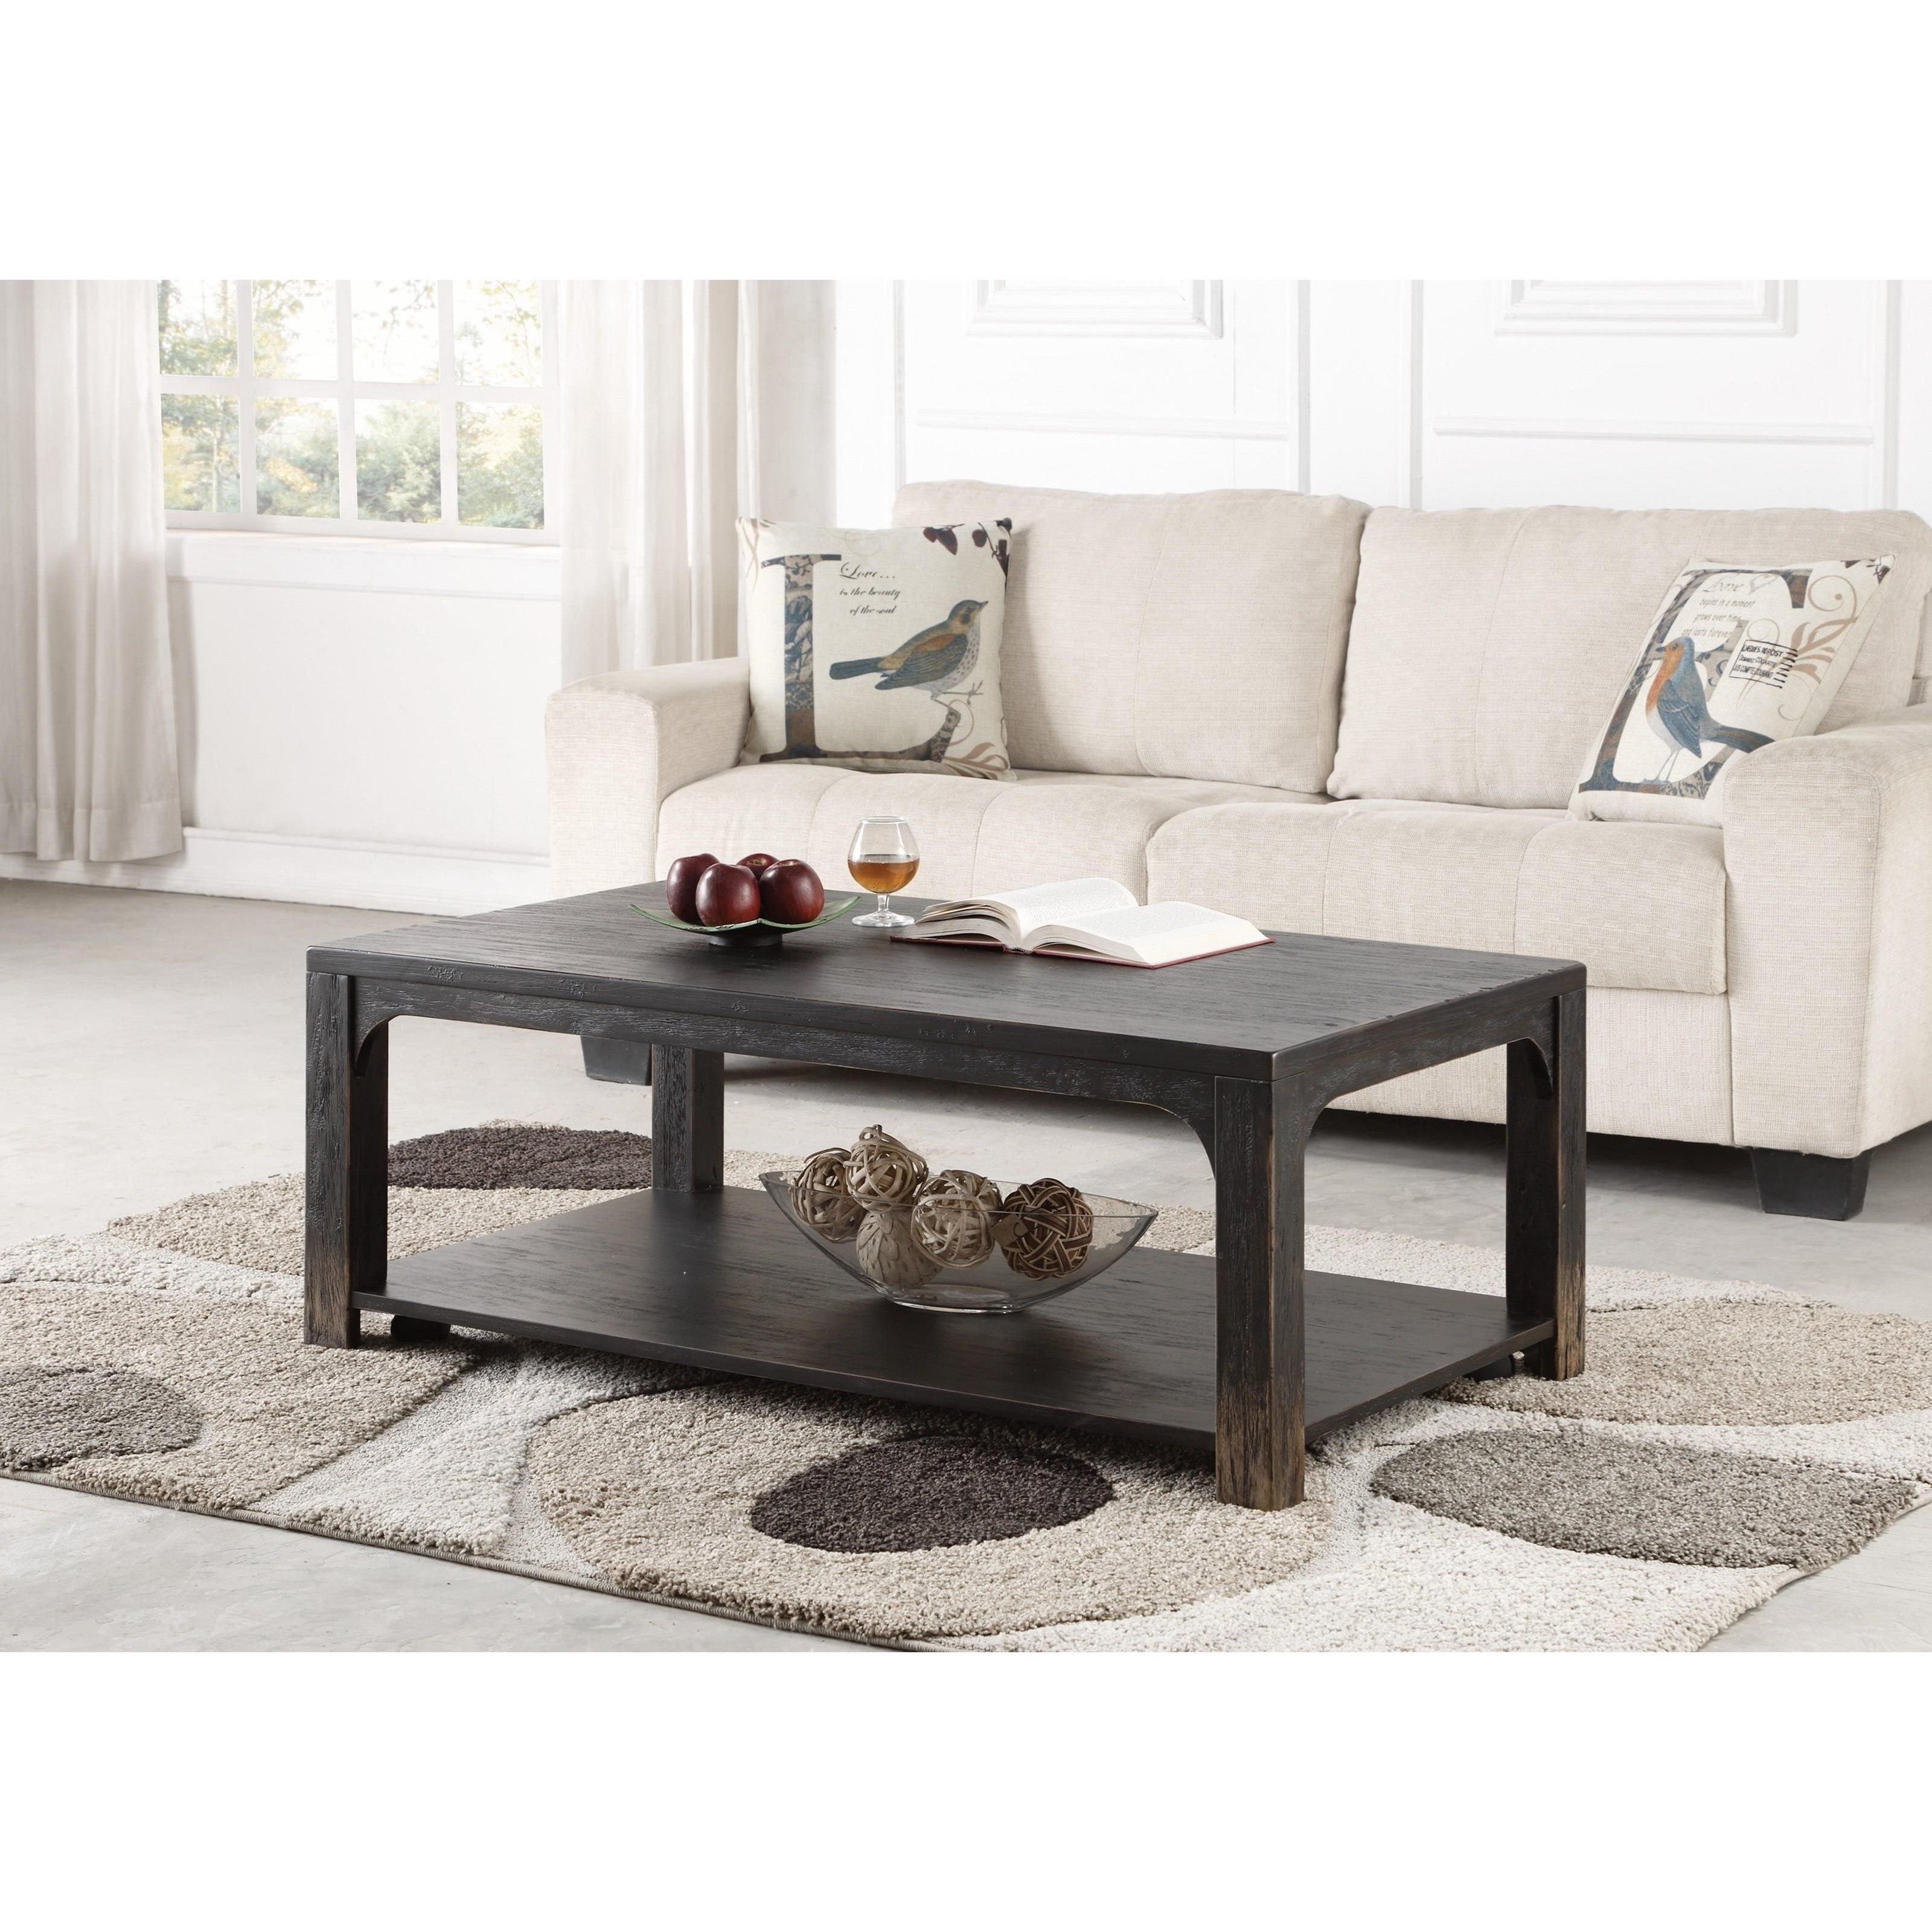 Flexsteel wynwood collection homestead w1437 0311 for City furniture in homestead